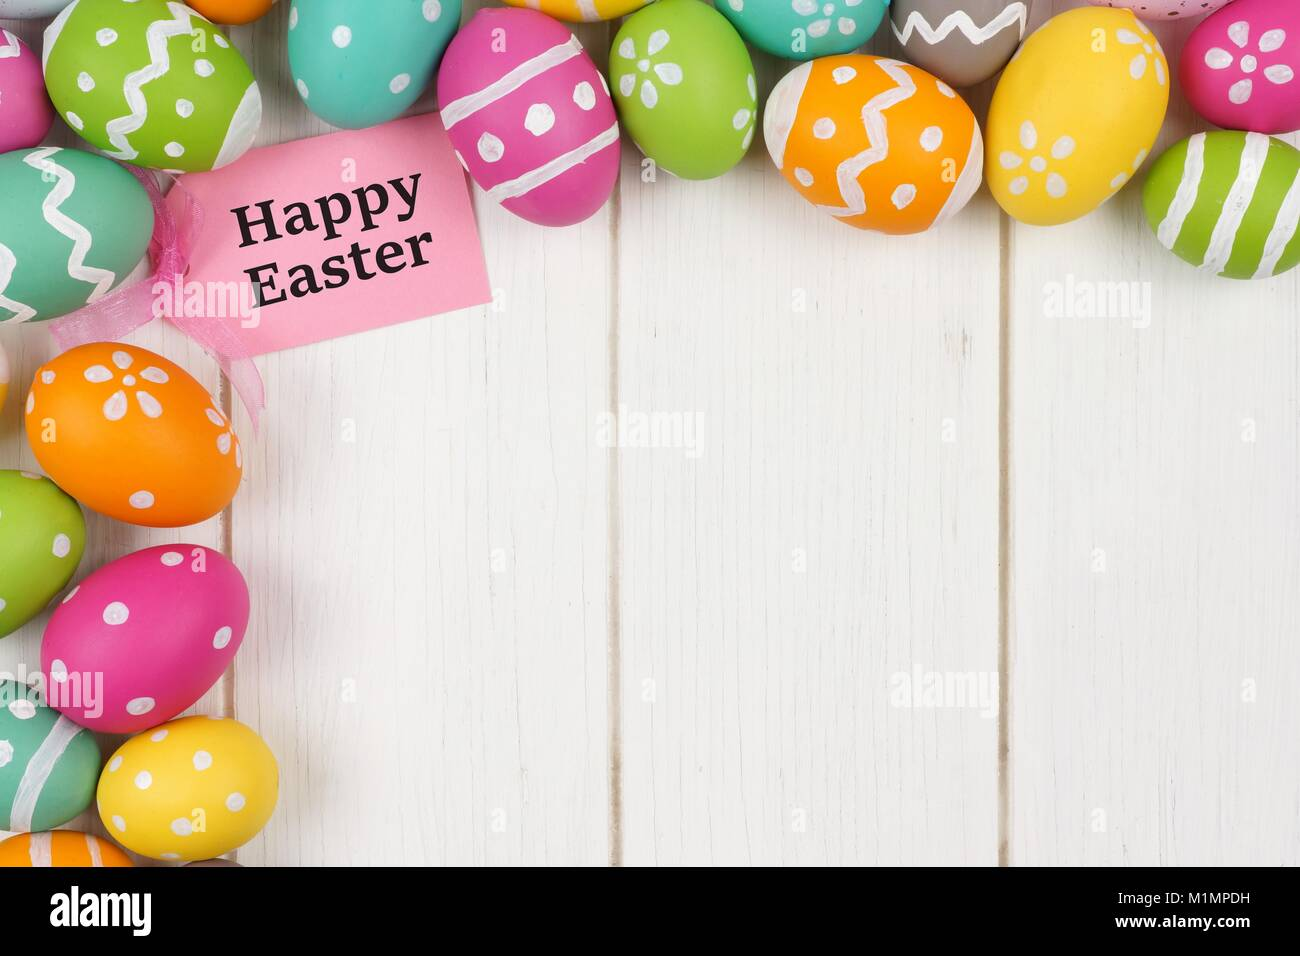 Happy easter gift tag with colorful easter egg corner border happy easter gift tag with colorful easter egg corner border against a white wood background negle Image collections